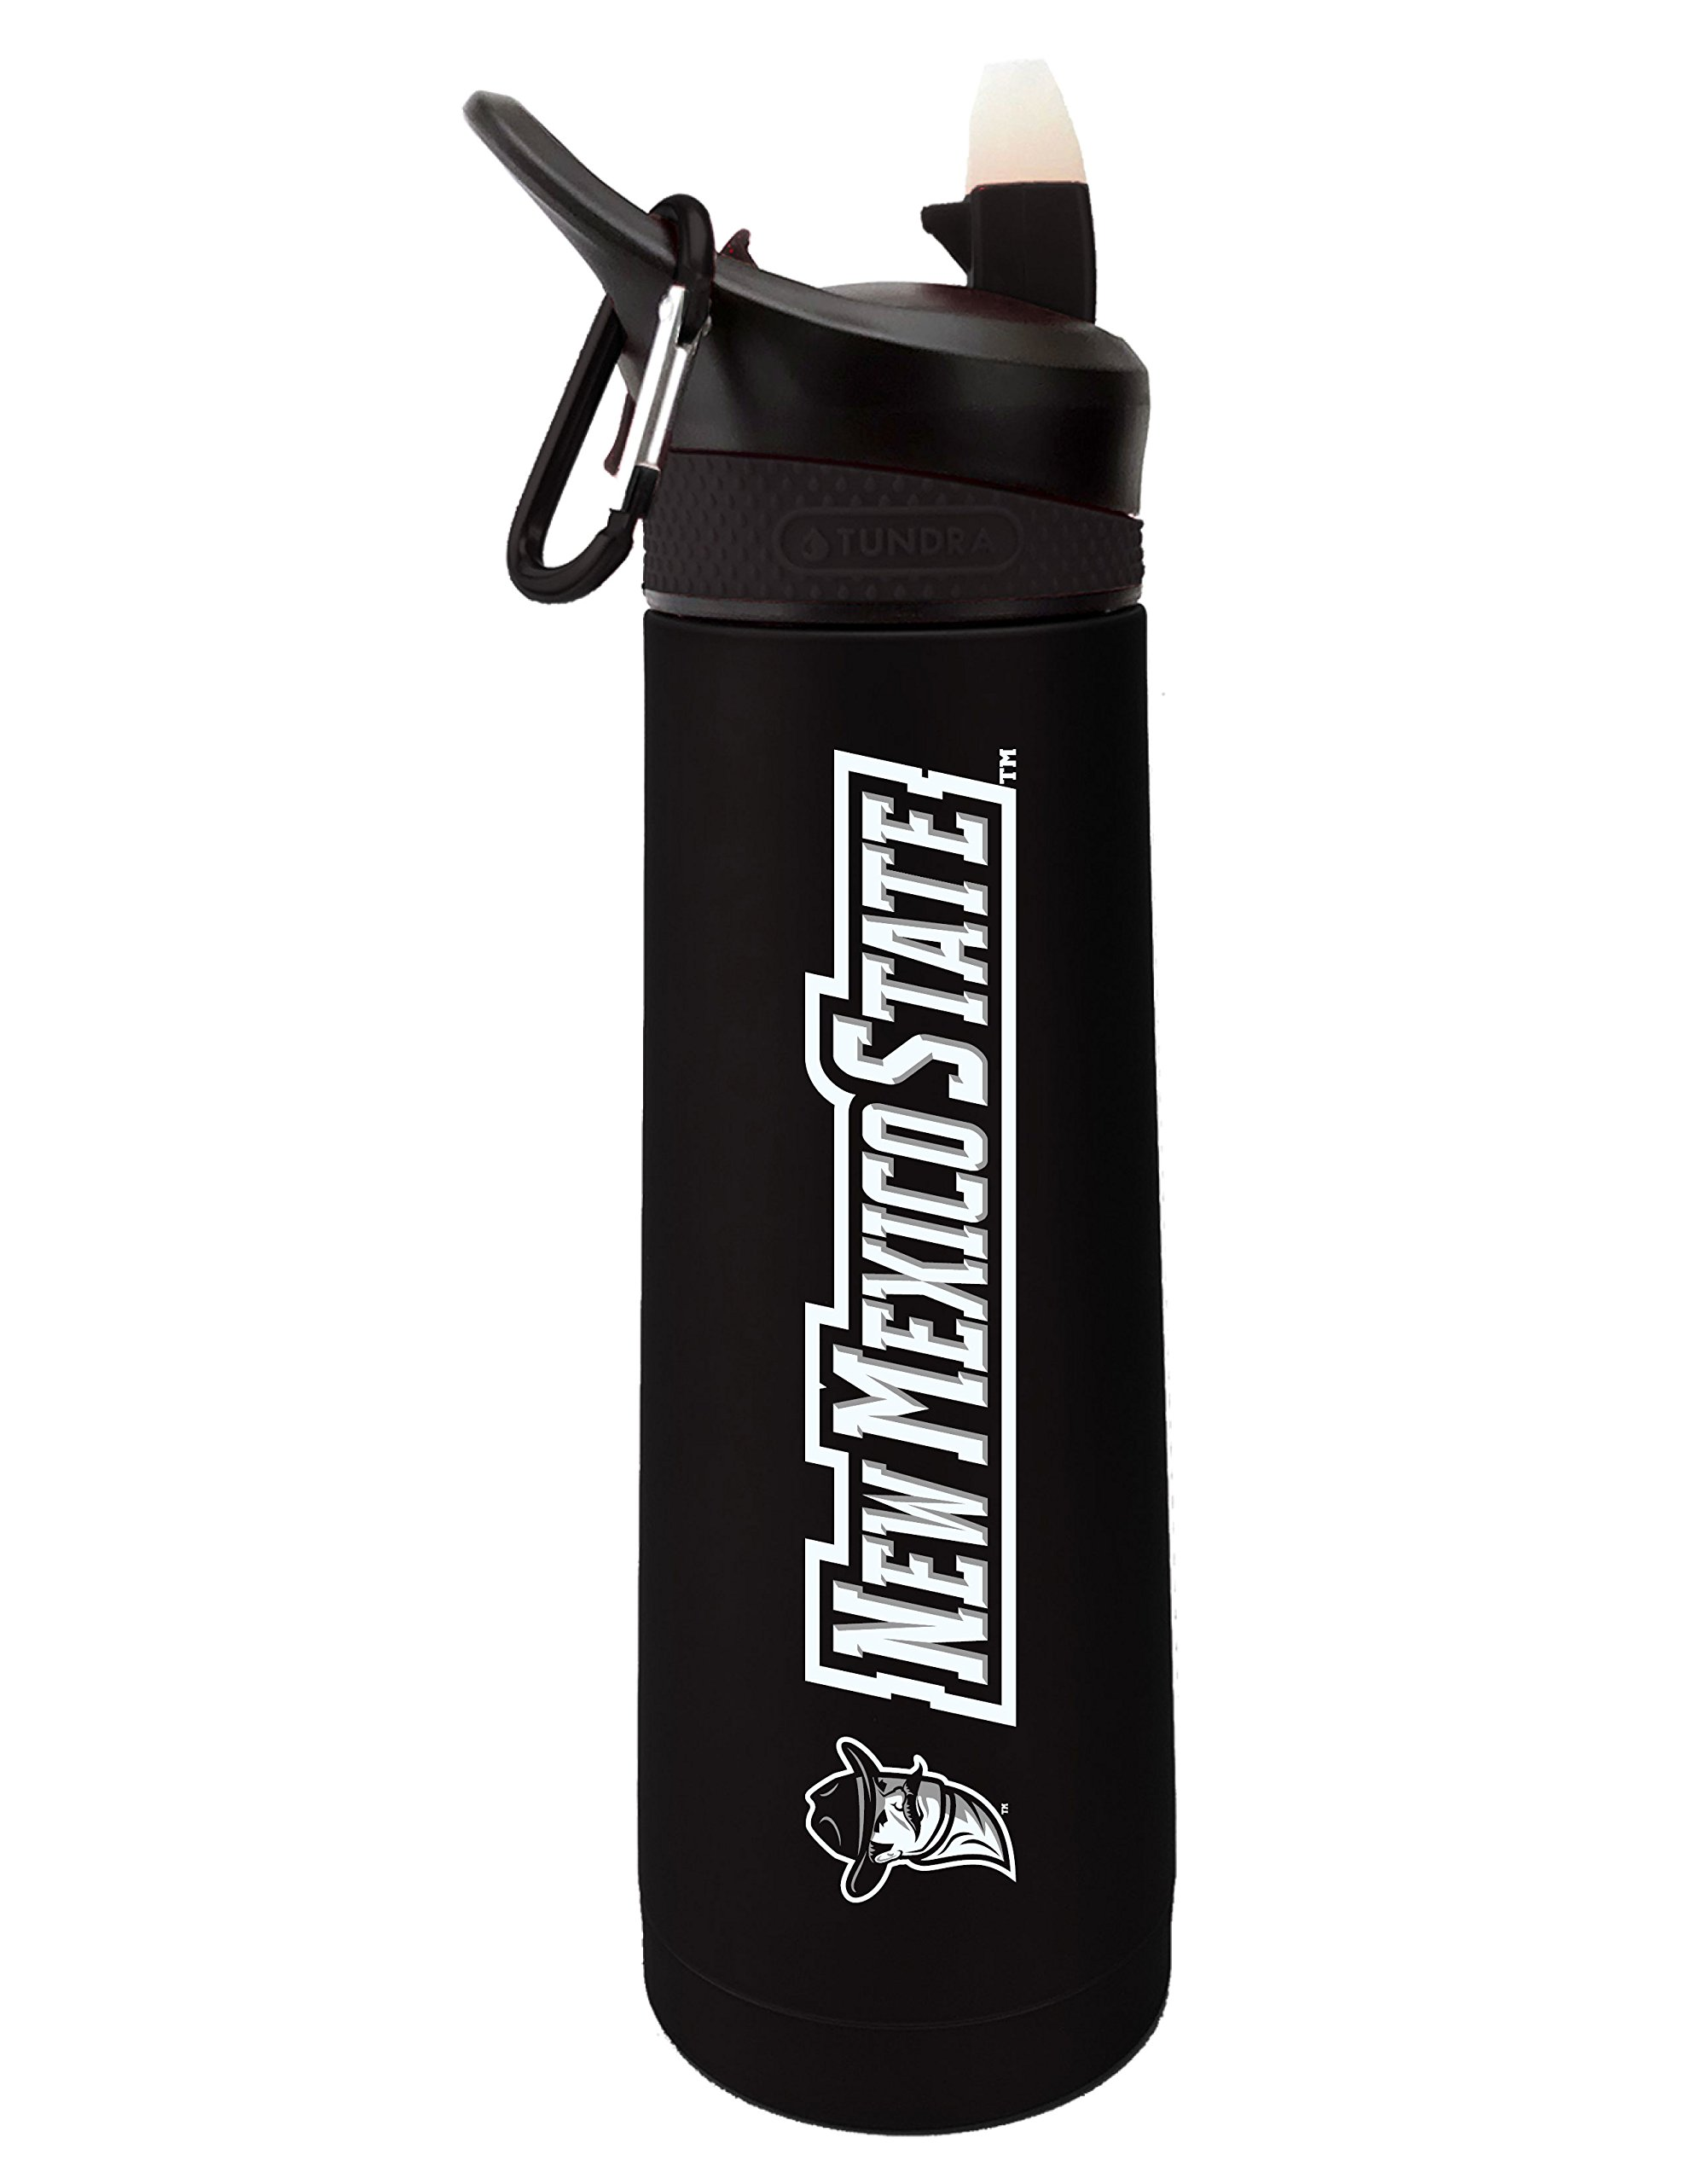 Fanatic Group New Mexico State Dual Walled Stainless Steel Sports Bottle, Design 1 - Black